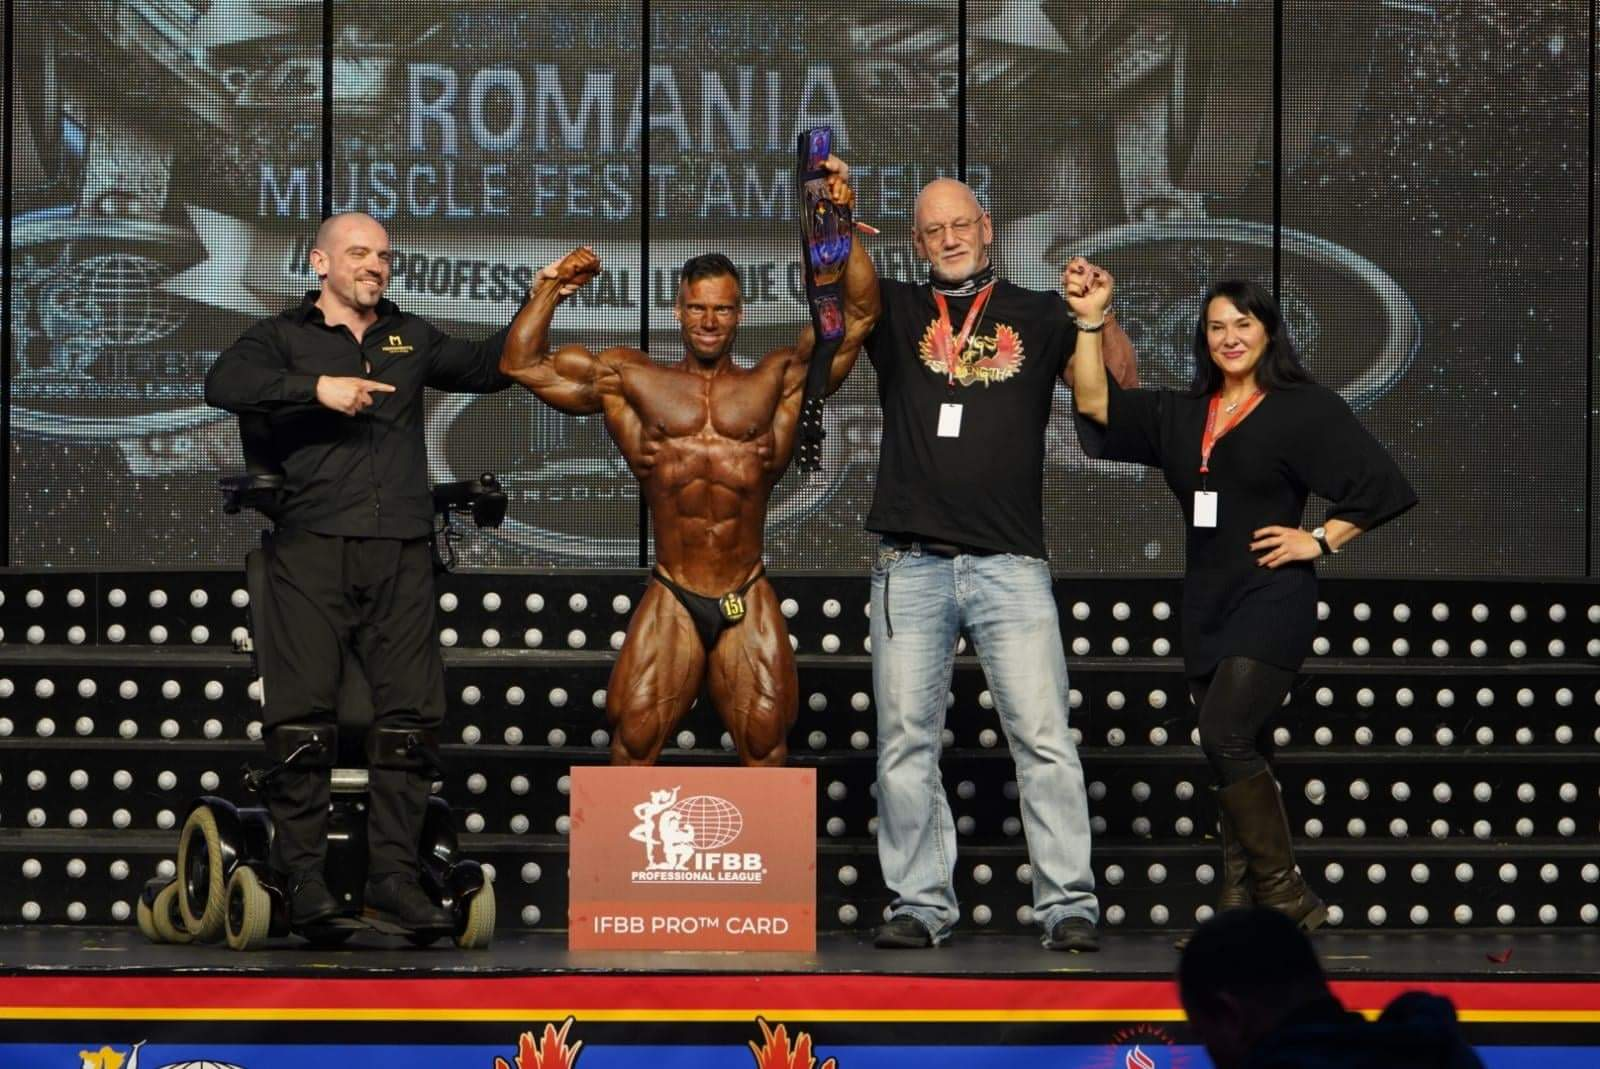 peter monlar vincere la categoria men's classic physique al romania muscle fest 2020